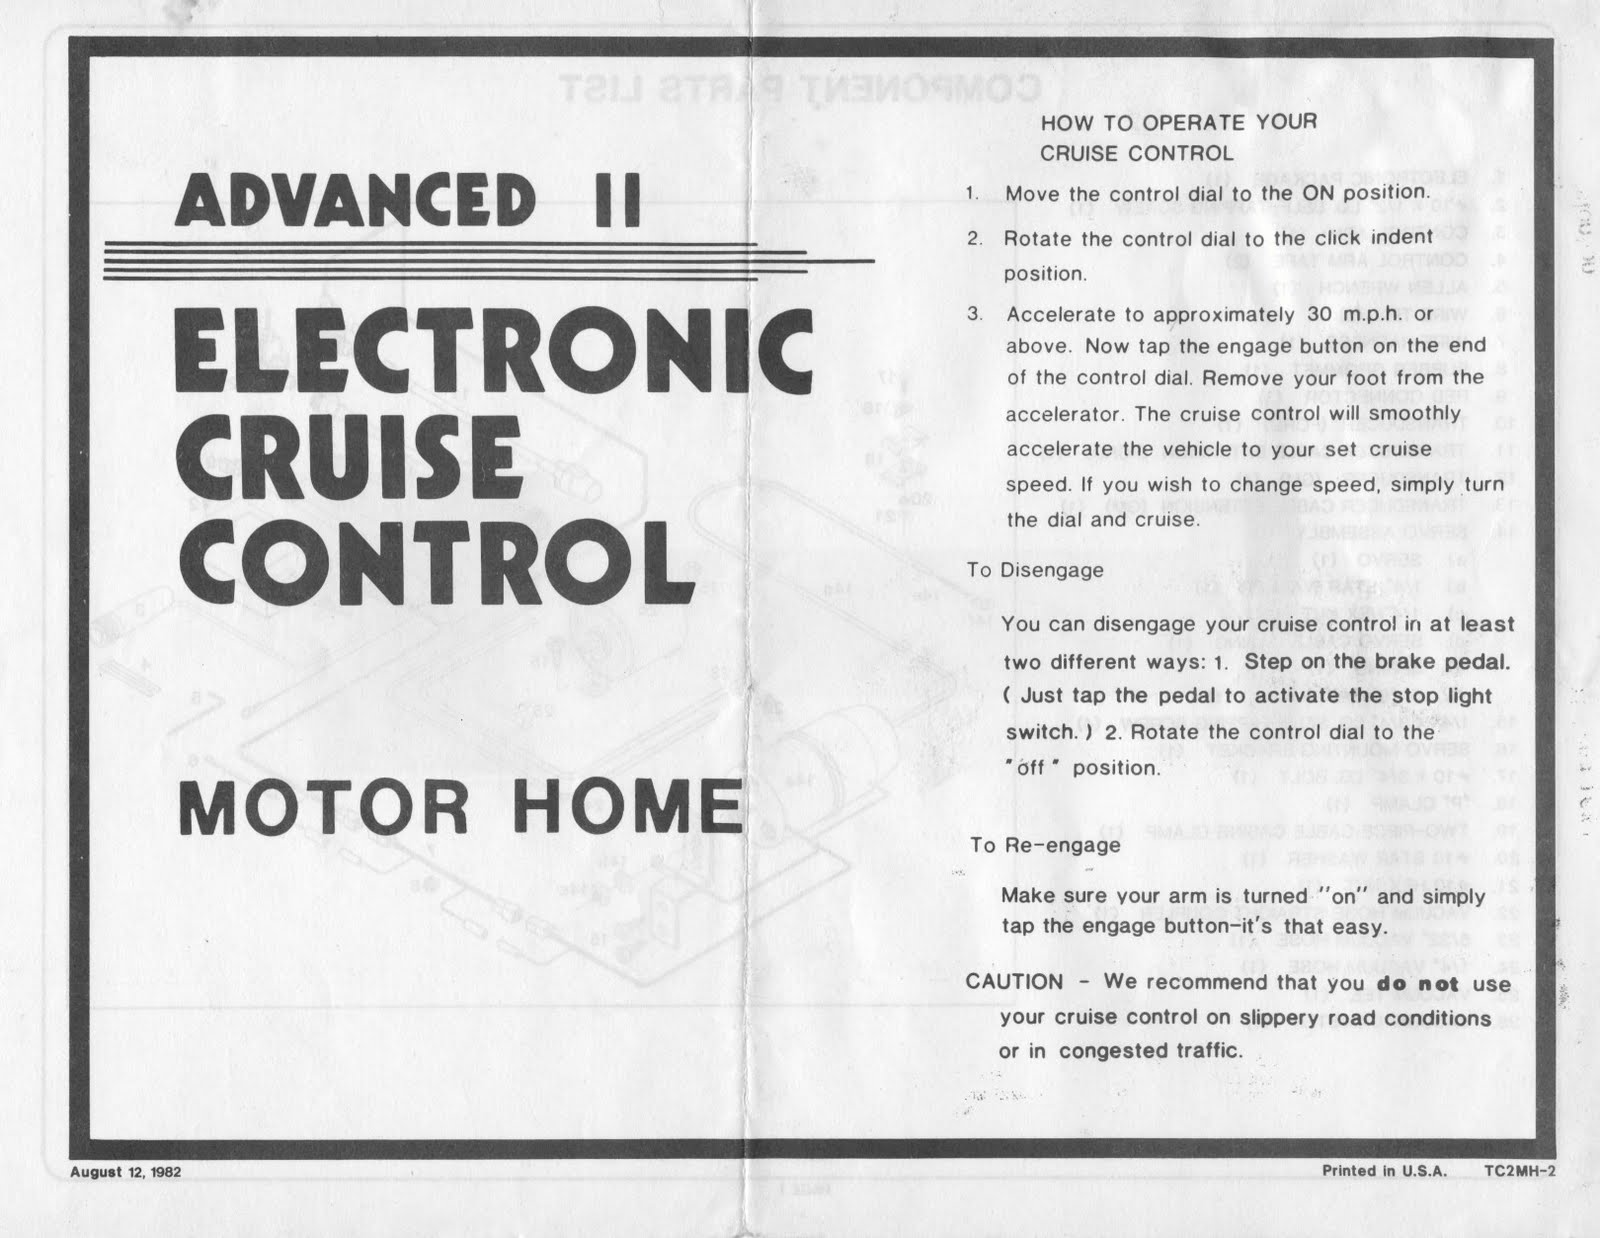 1983 Fleetwood Pace Arrow Owners Manuals 83 Electronic General Cruise Control Diagram Manual